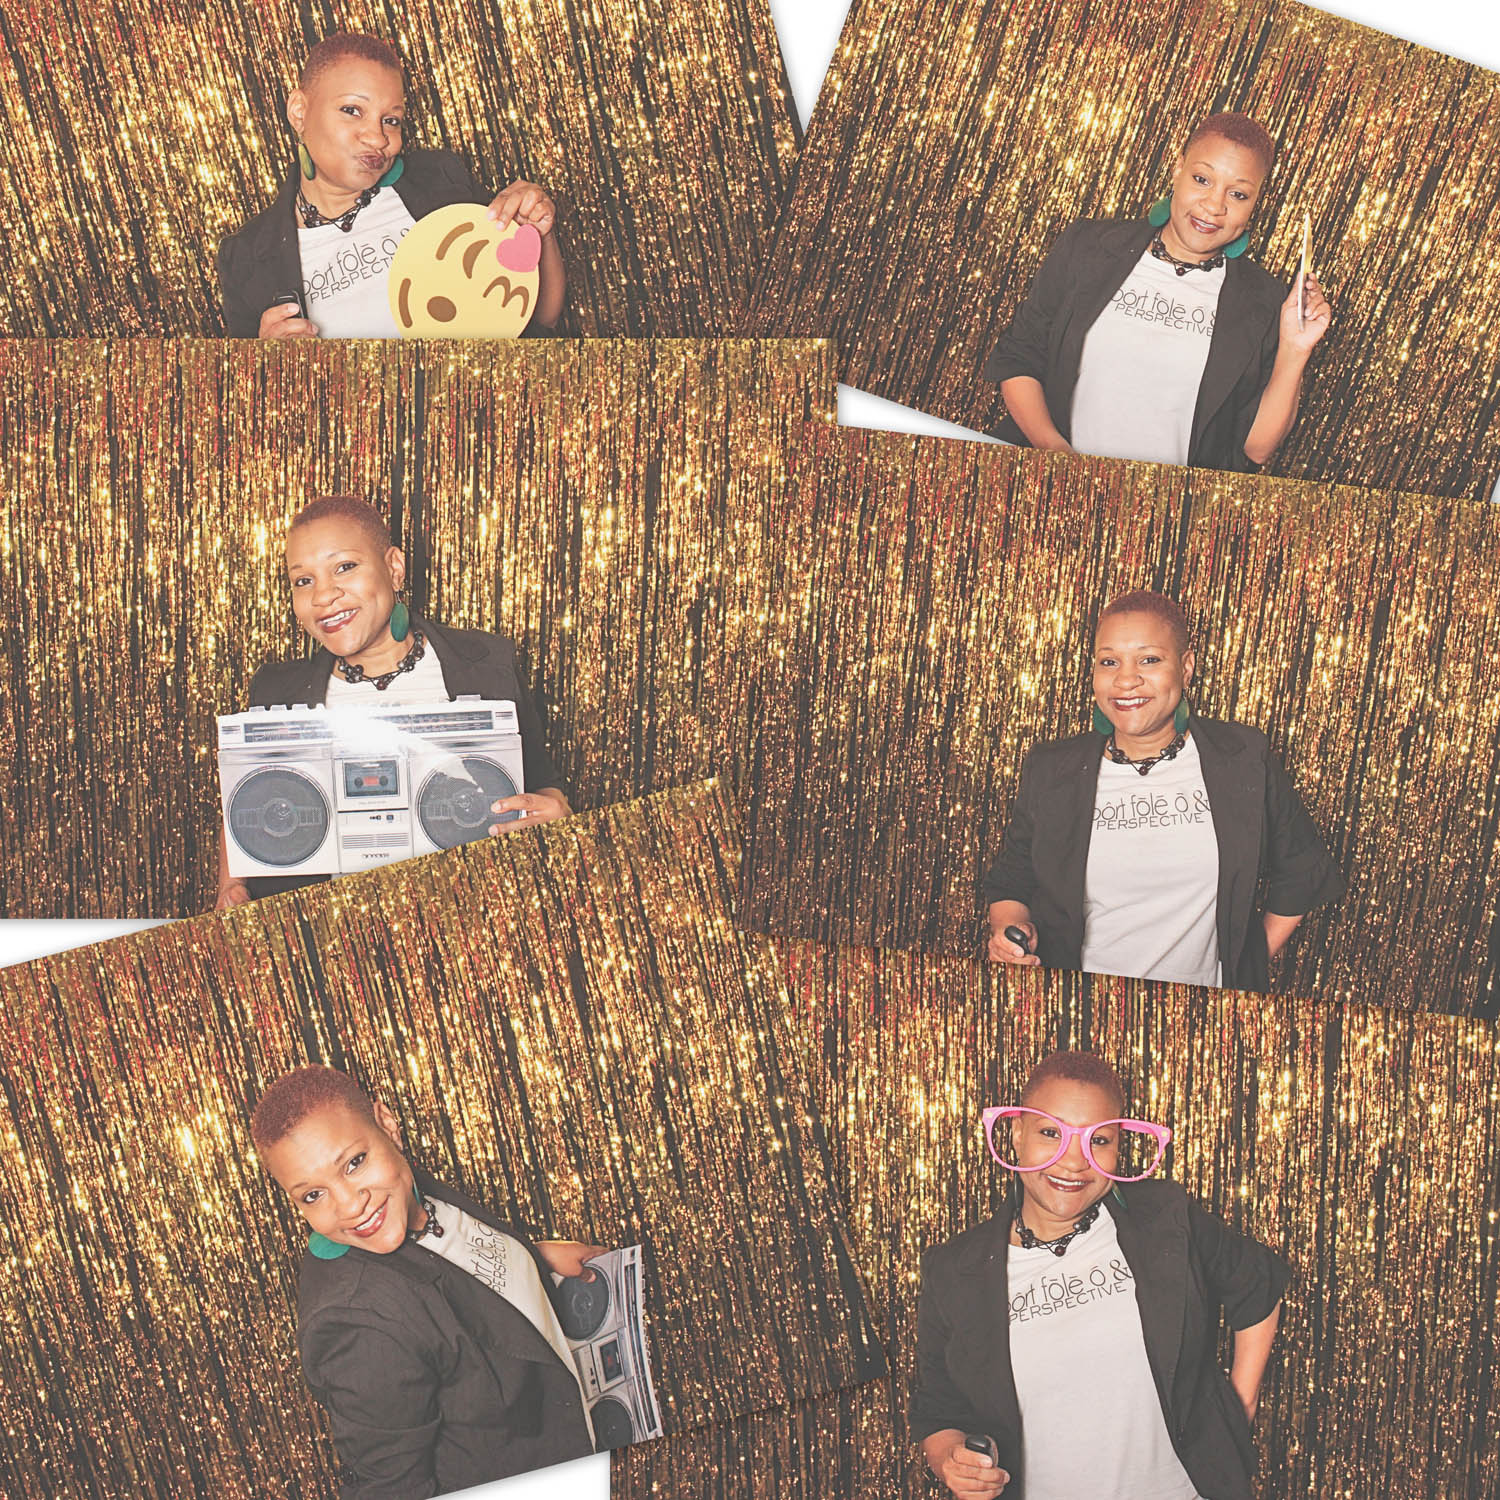 Having a few fun moments at the photo booth!!!